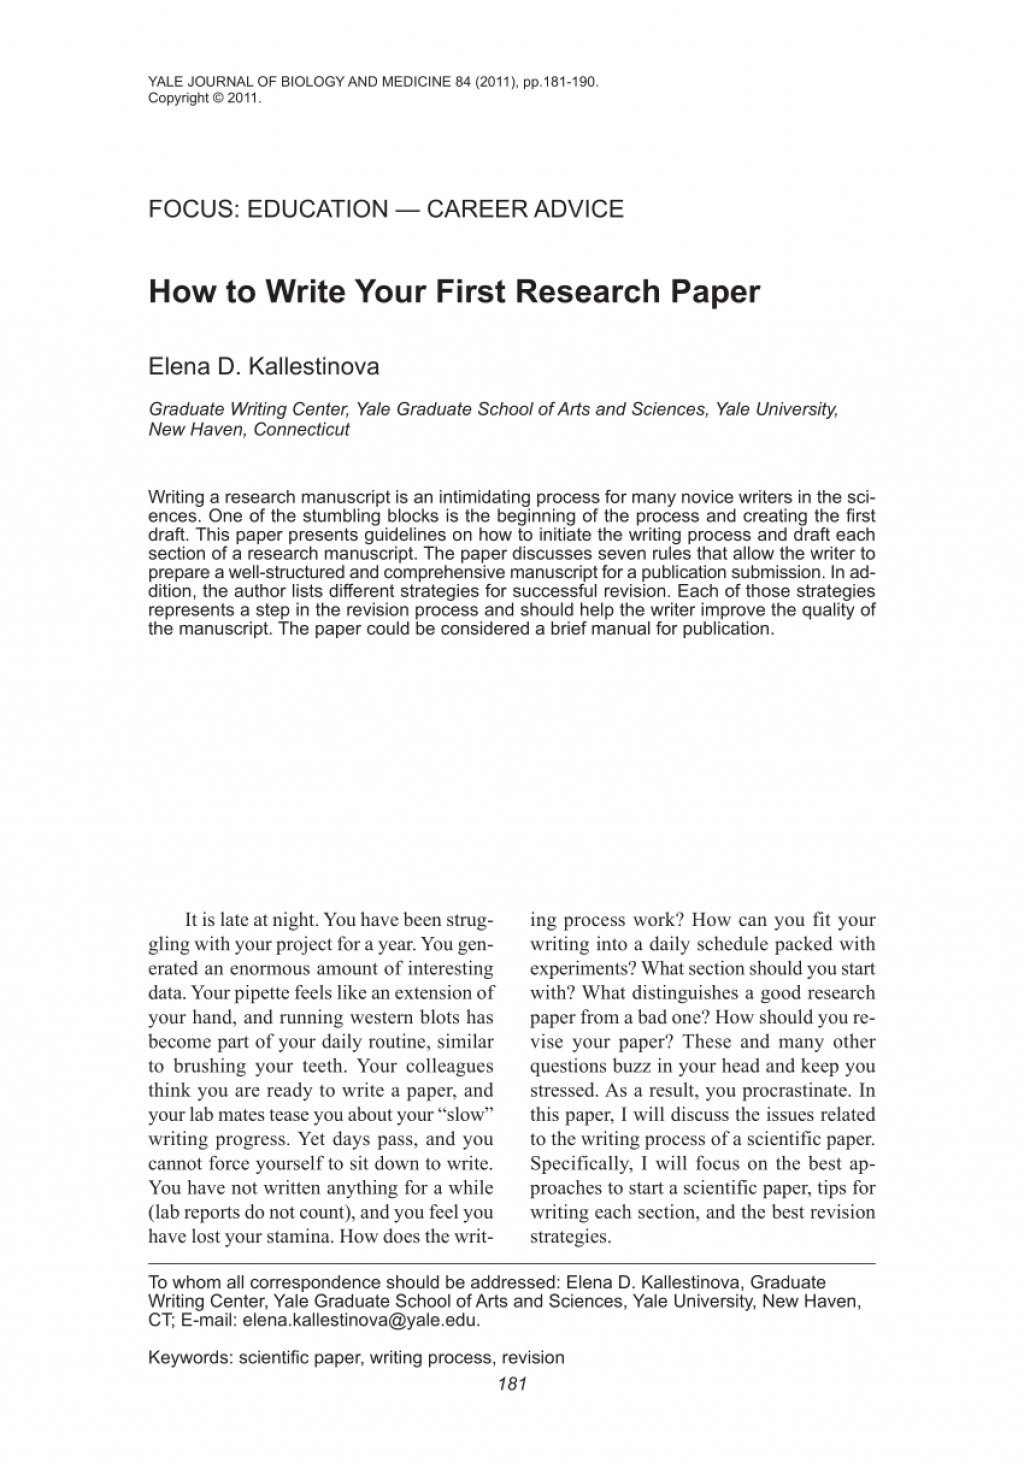 003 How To Write Research Paper Frightening Abstract For Sample Proposal A Summary Of Your Large